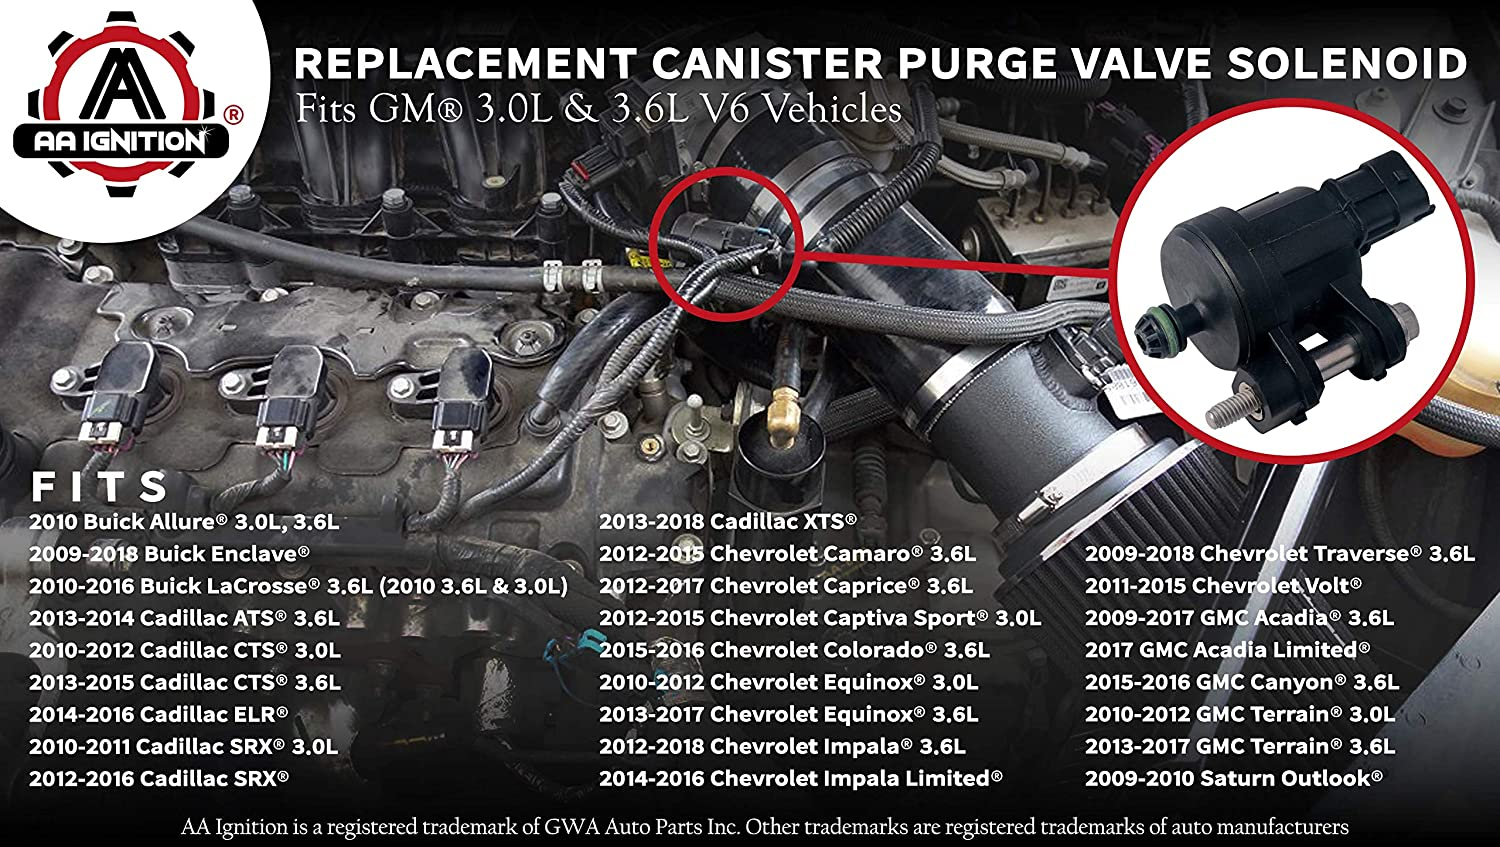 Vapor Canister Purge Valve Solenoid Replacement for Buick Enclave Lacrosse Cadillac ATS CTS Camaro Equinox Impala GMC Acadia Terrain Saturn Outlook 3.0L 3.6L 718-210 12610560